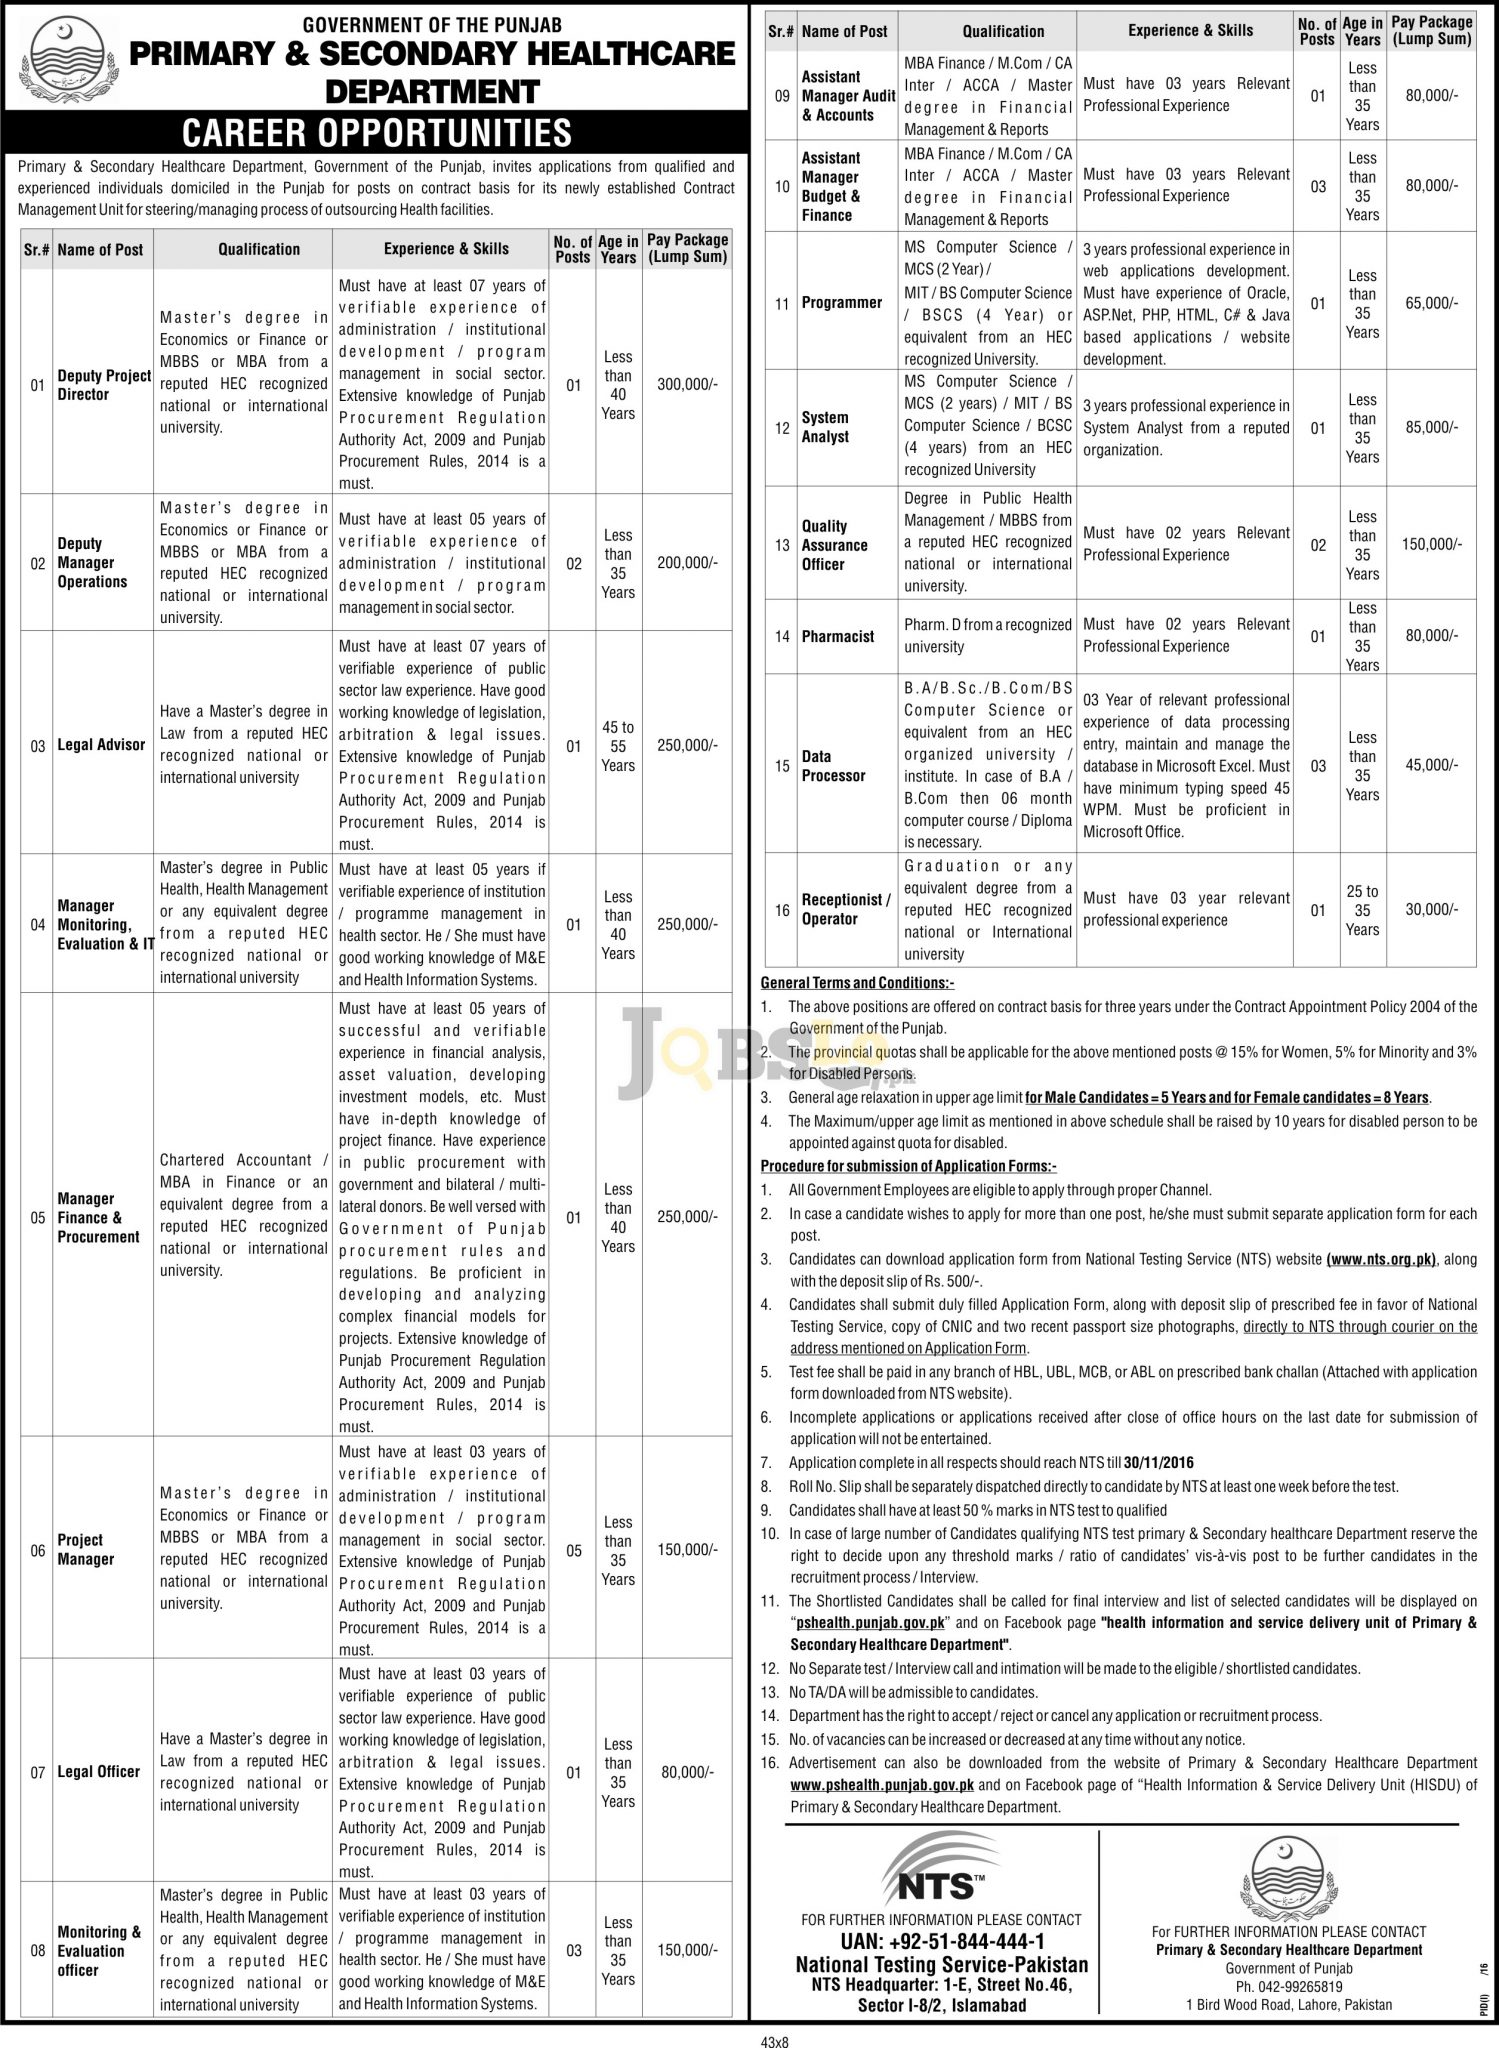 Primary & Secondary Healthcare Department Punjab Jobs